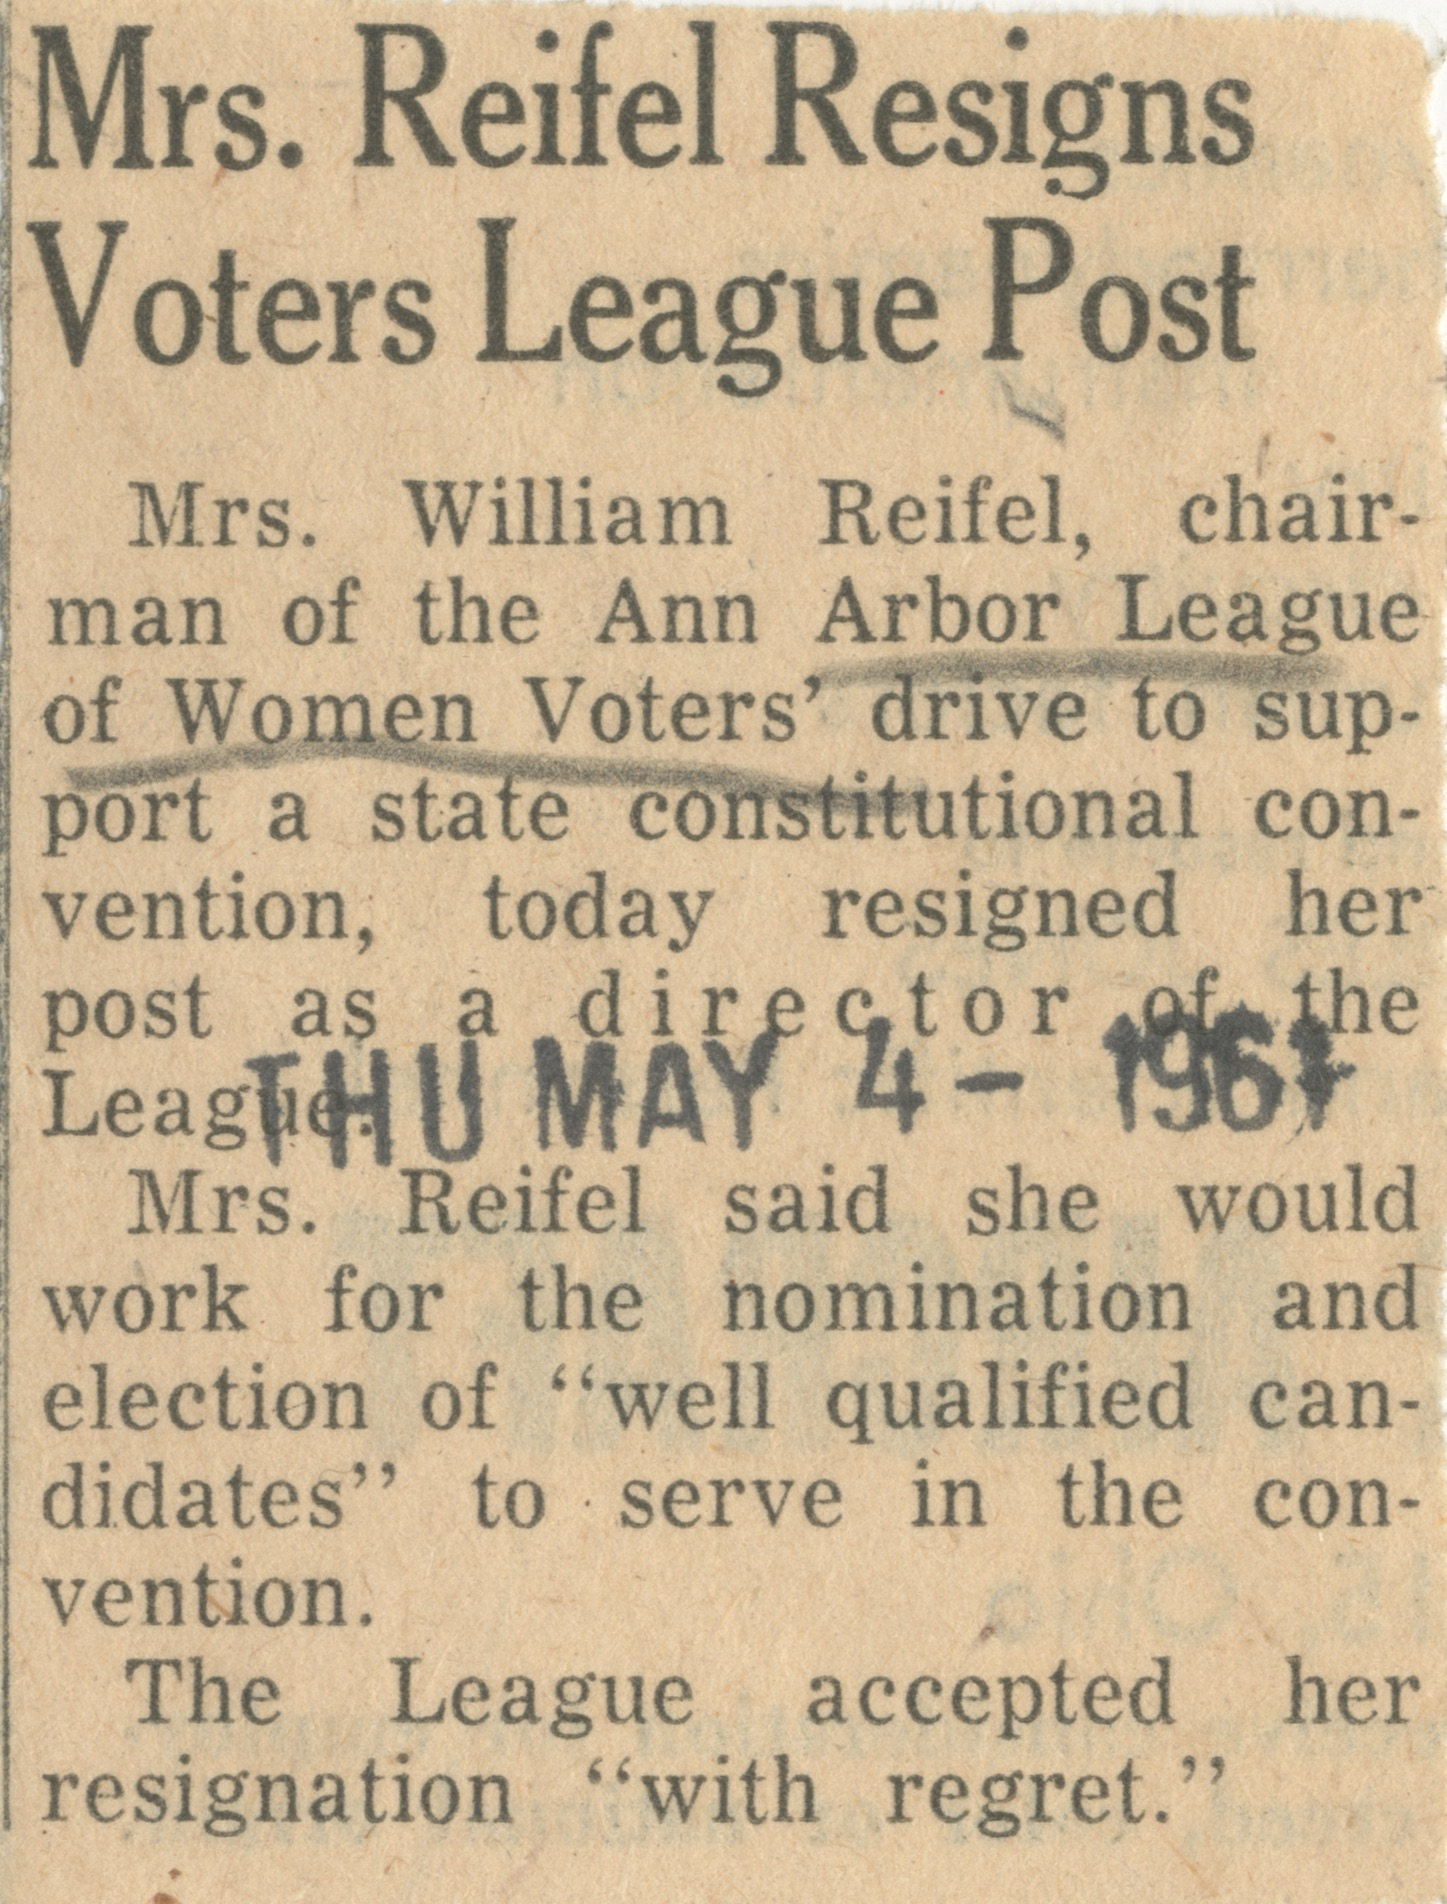 Mrs. Reifel Resigns Voters League Post image